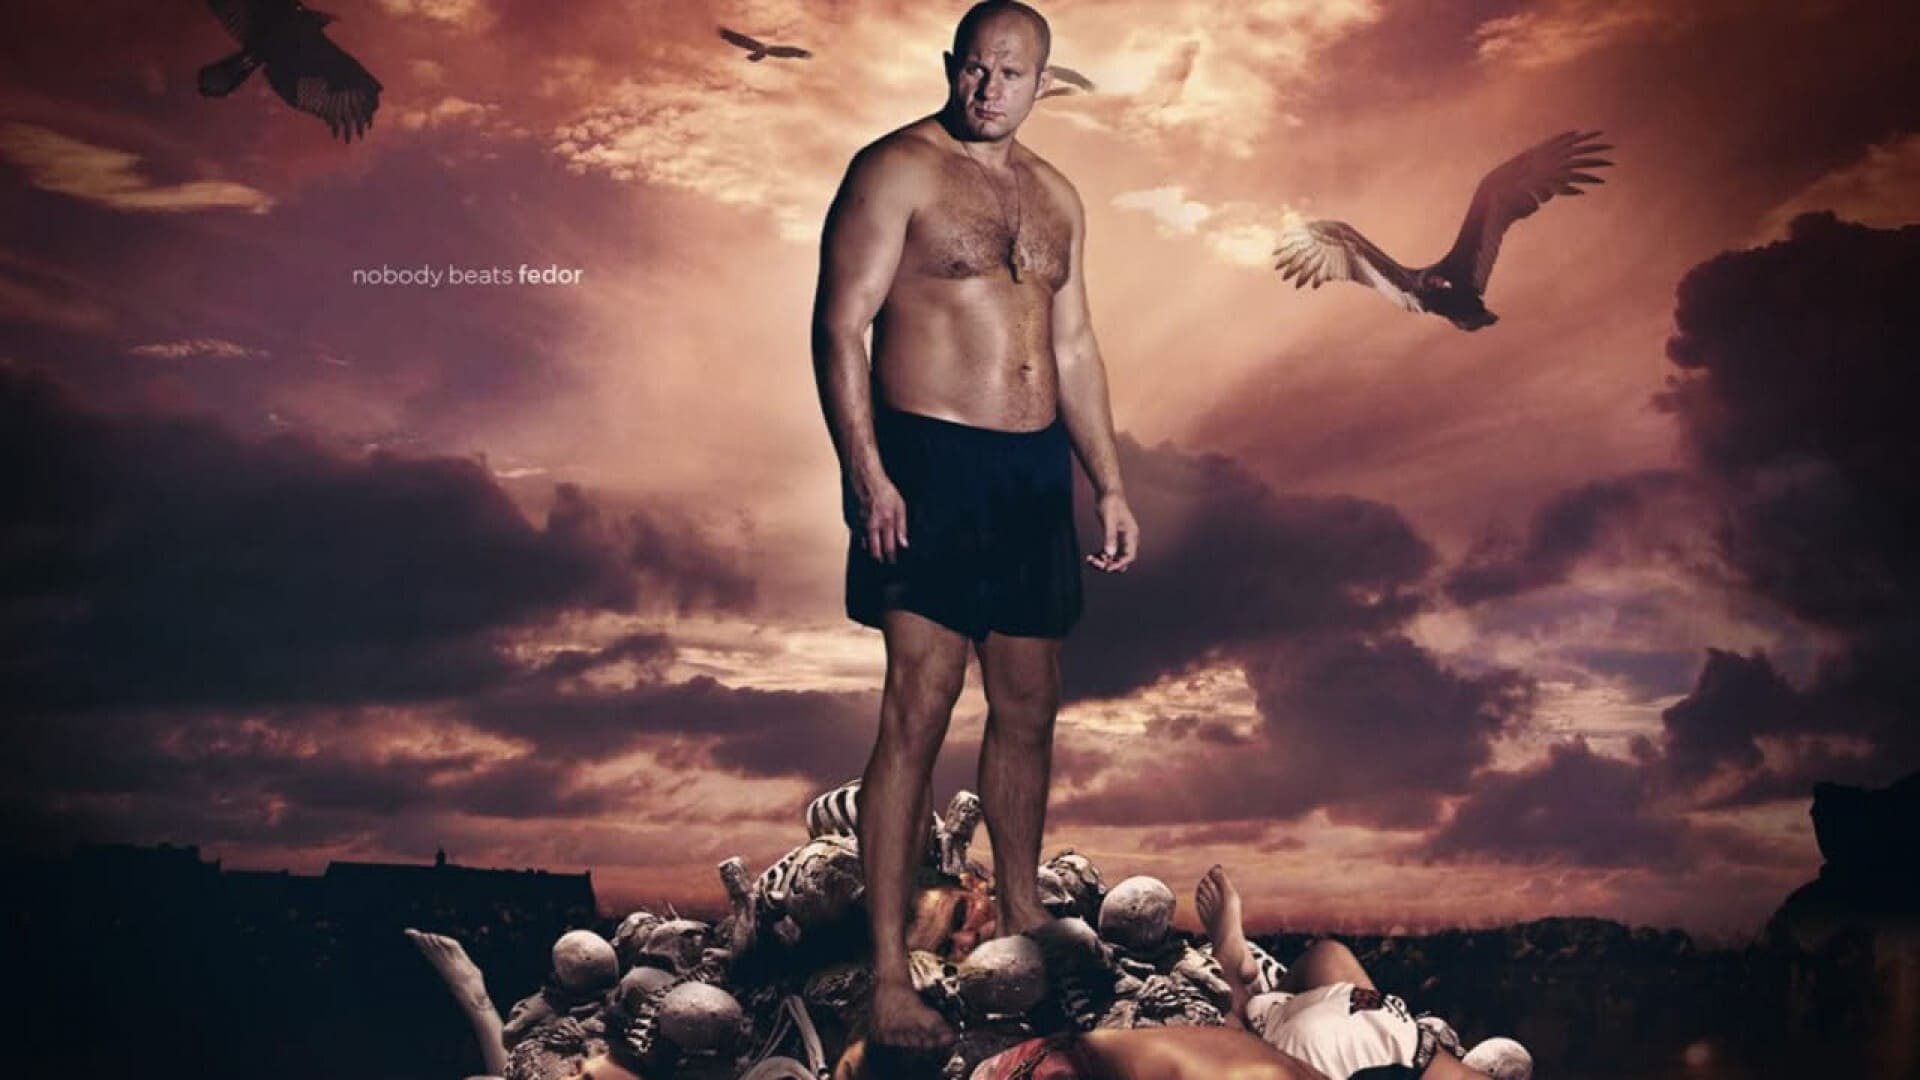 Fedor: The Baddest Man On The Planet (2009)